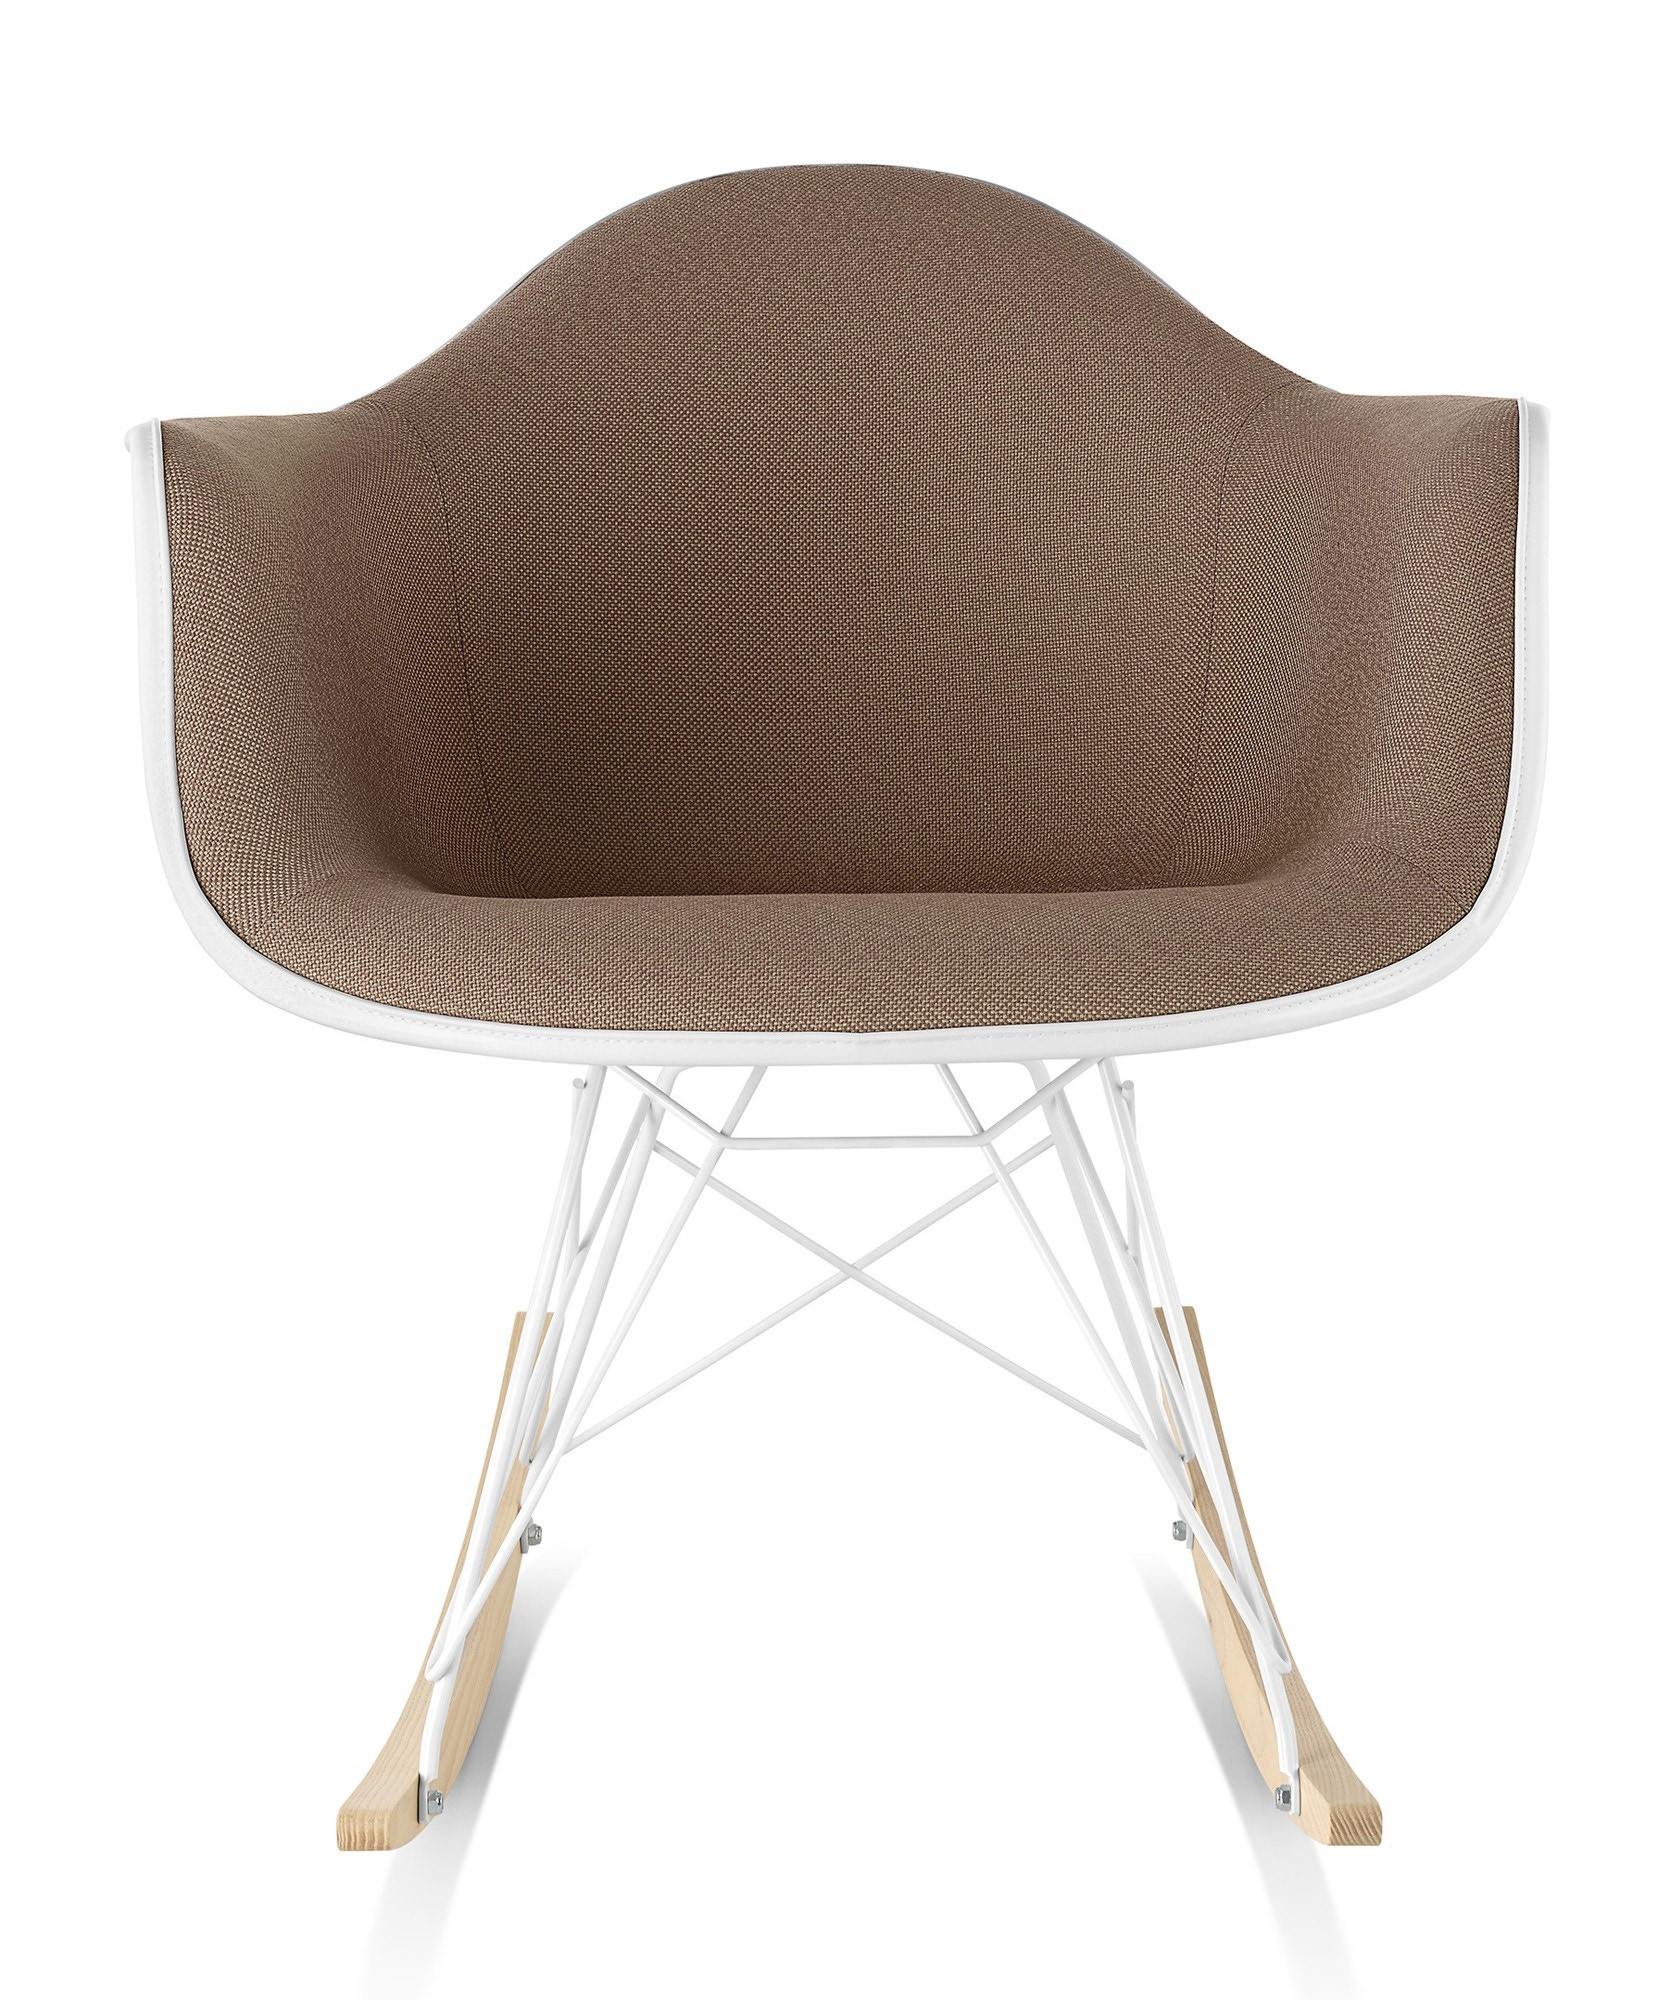 Charmant Herman Miller Eames® Molded Plastic Armchair Rocker Base Upholstered Shell